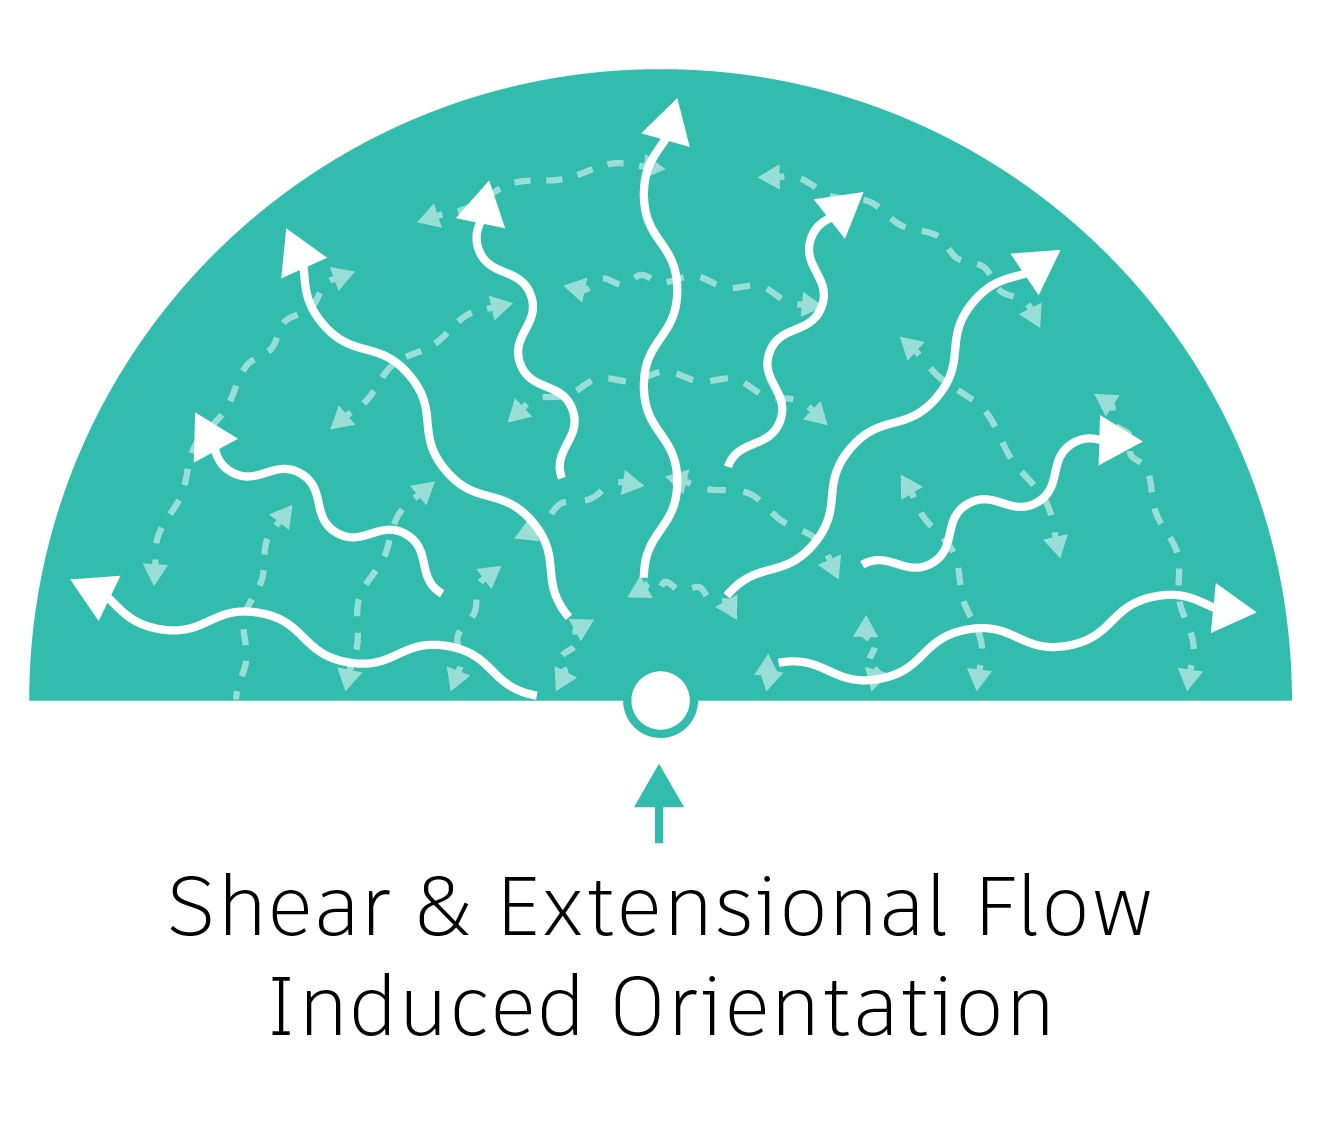 Shear and extensional flow-induced orientation